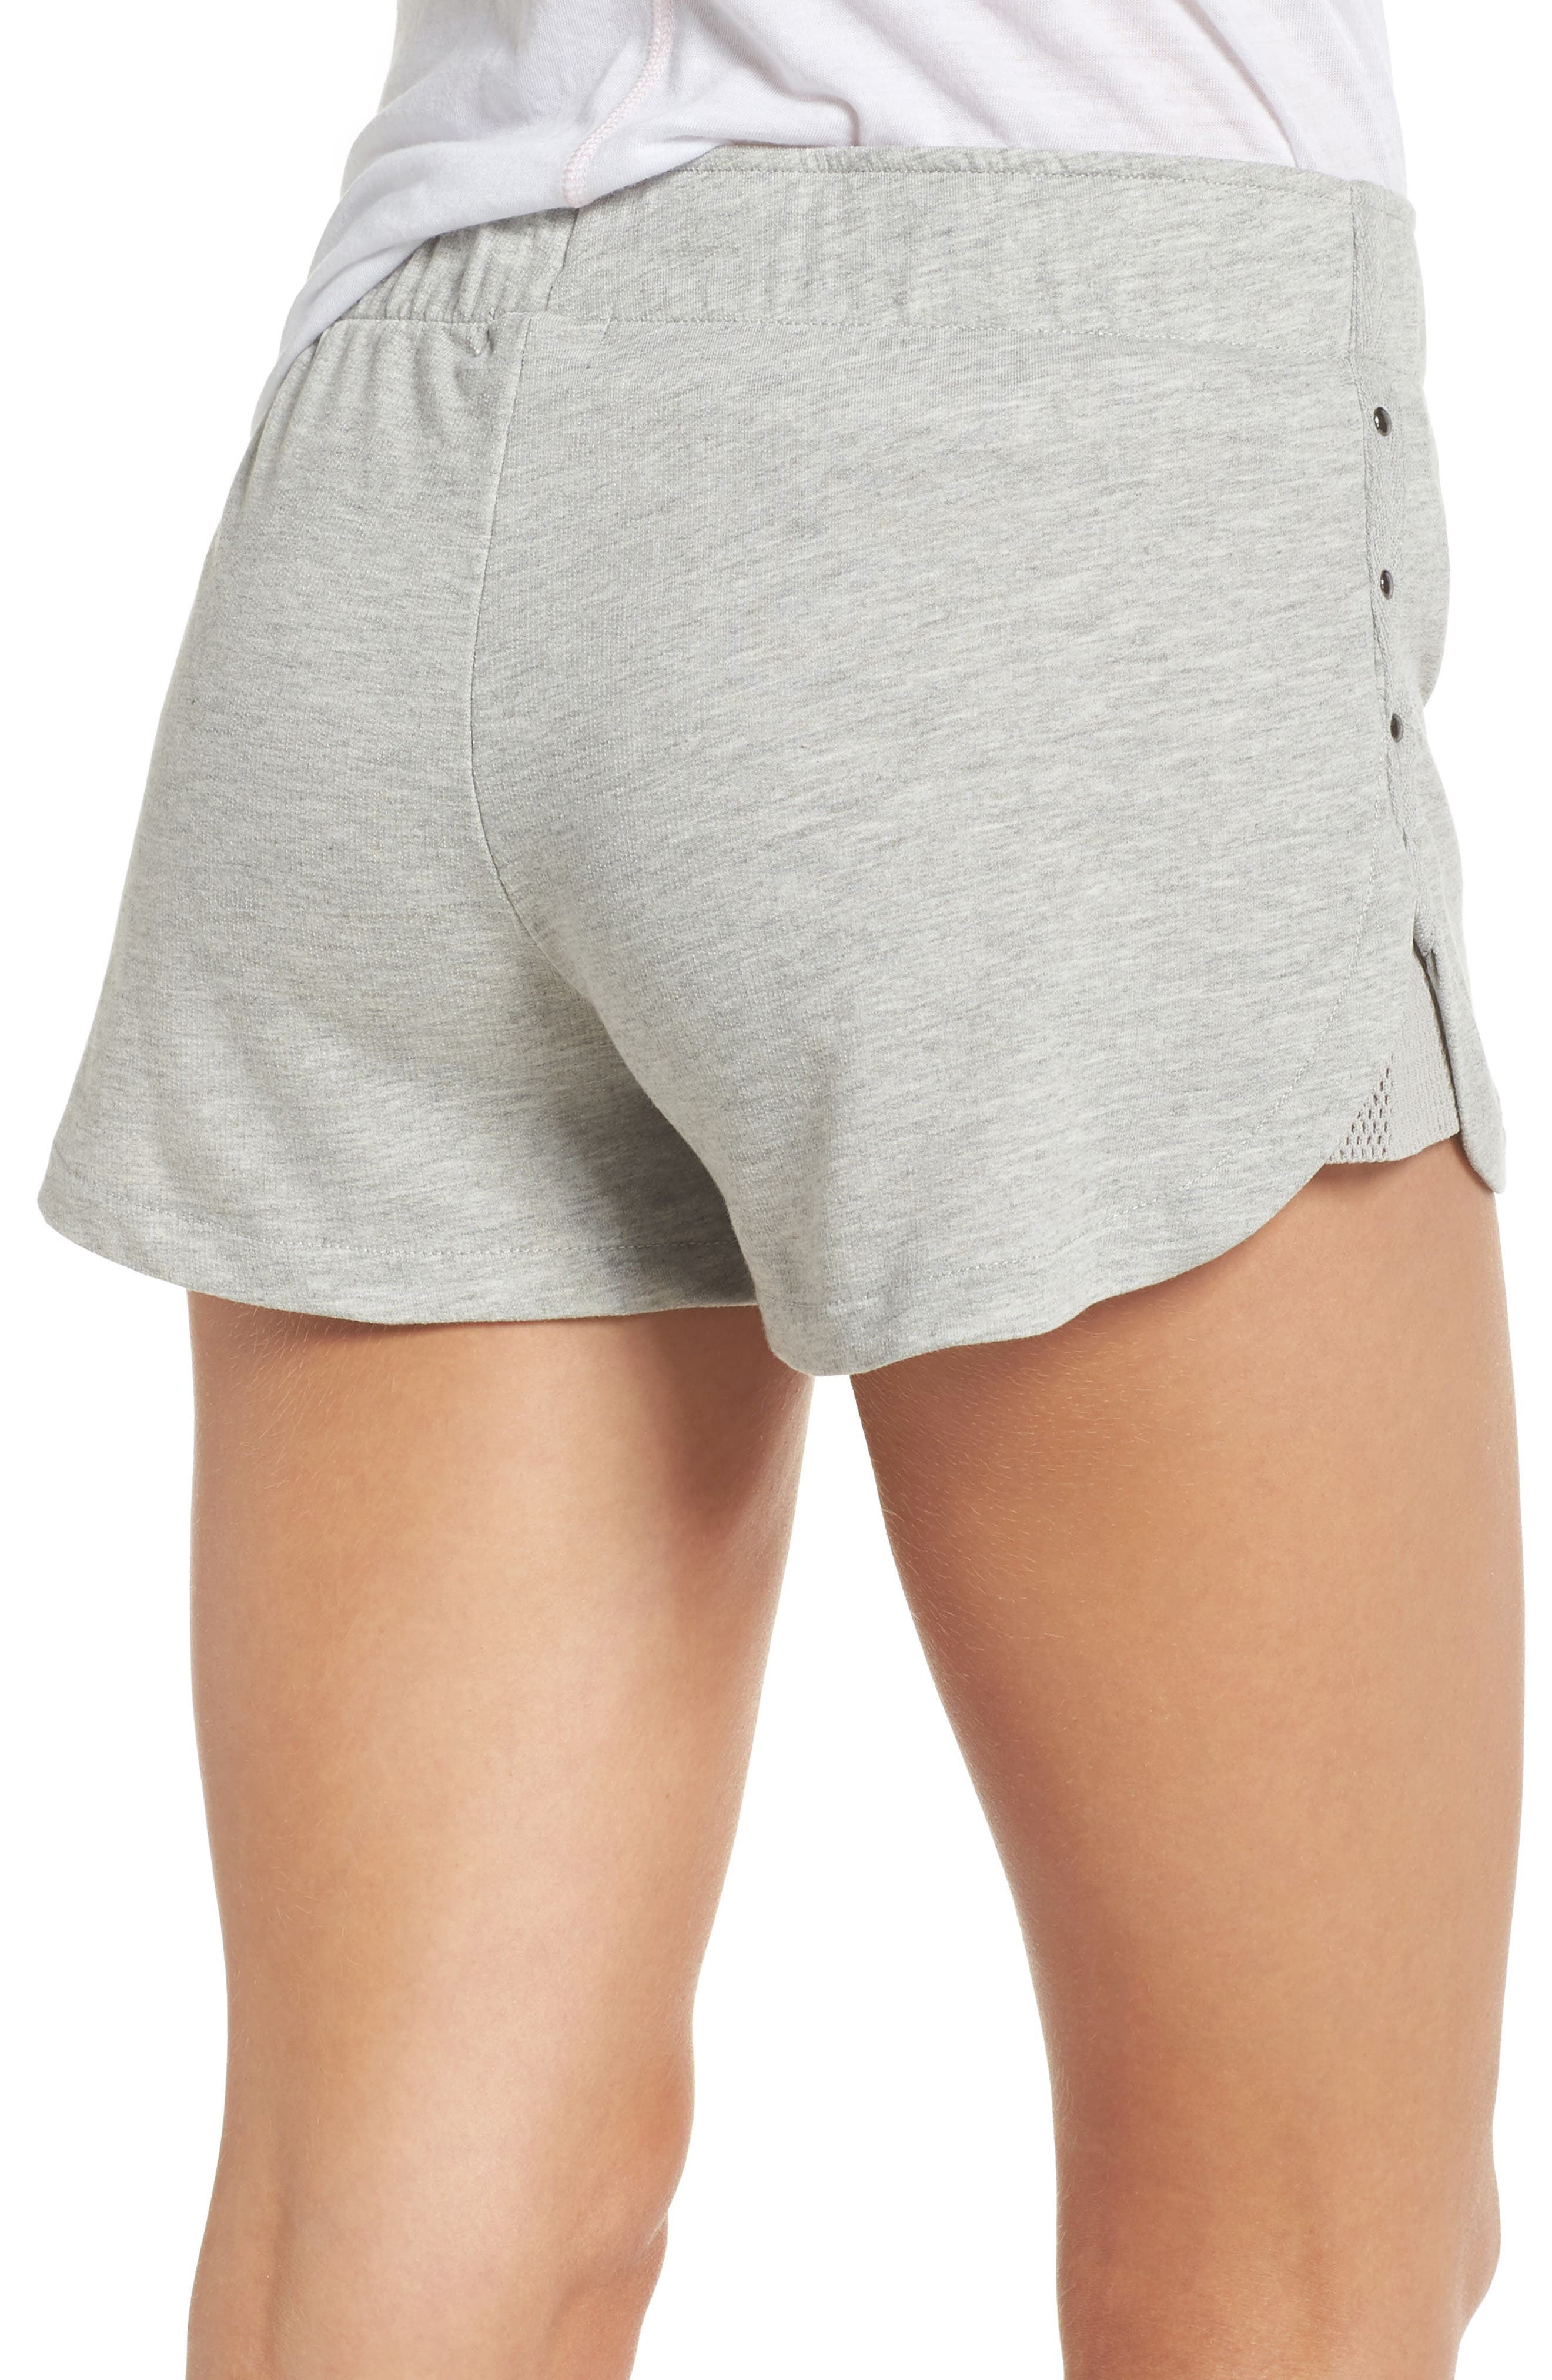 Pajama Shorts,                             Alternate thumbnail 2, color,                             H Grey